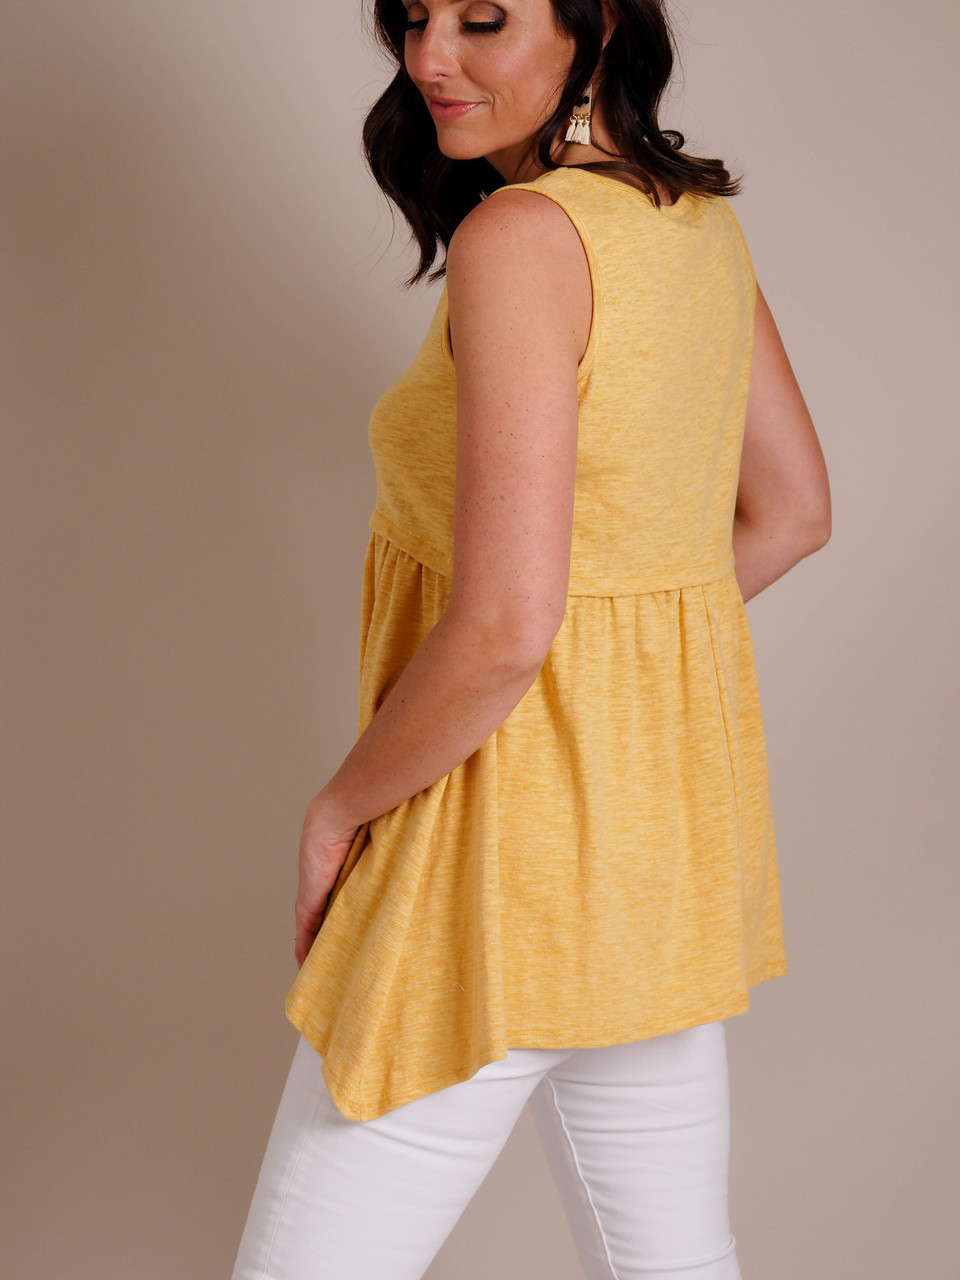 mustard yellow tank top with empire waist